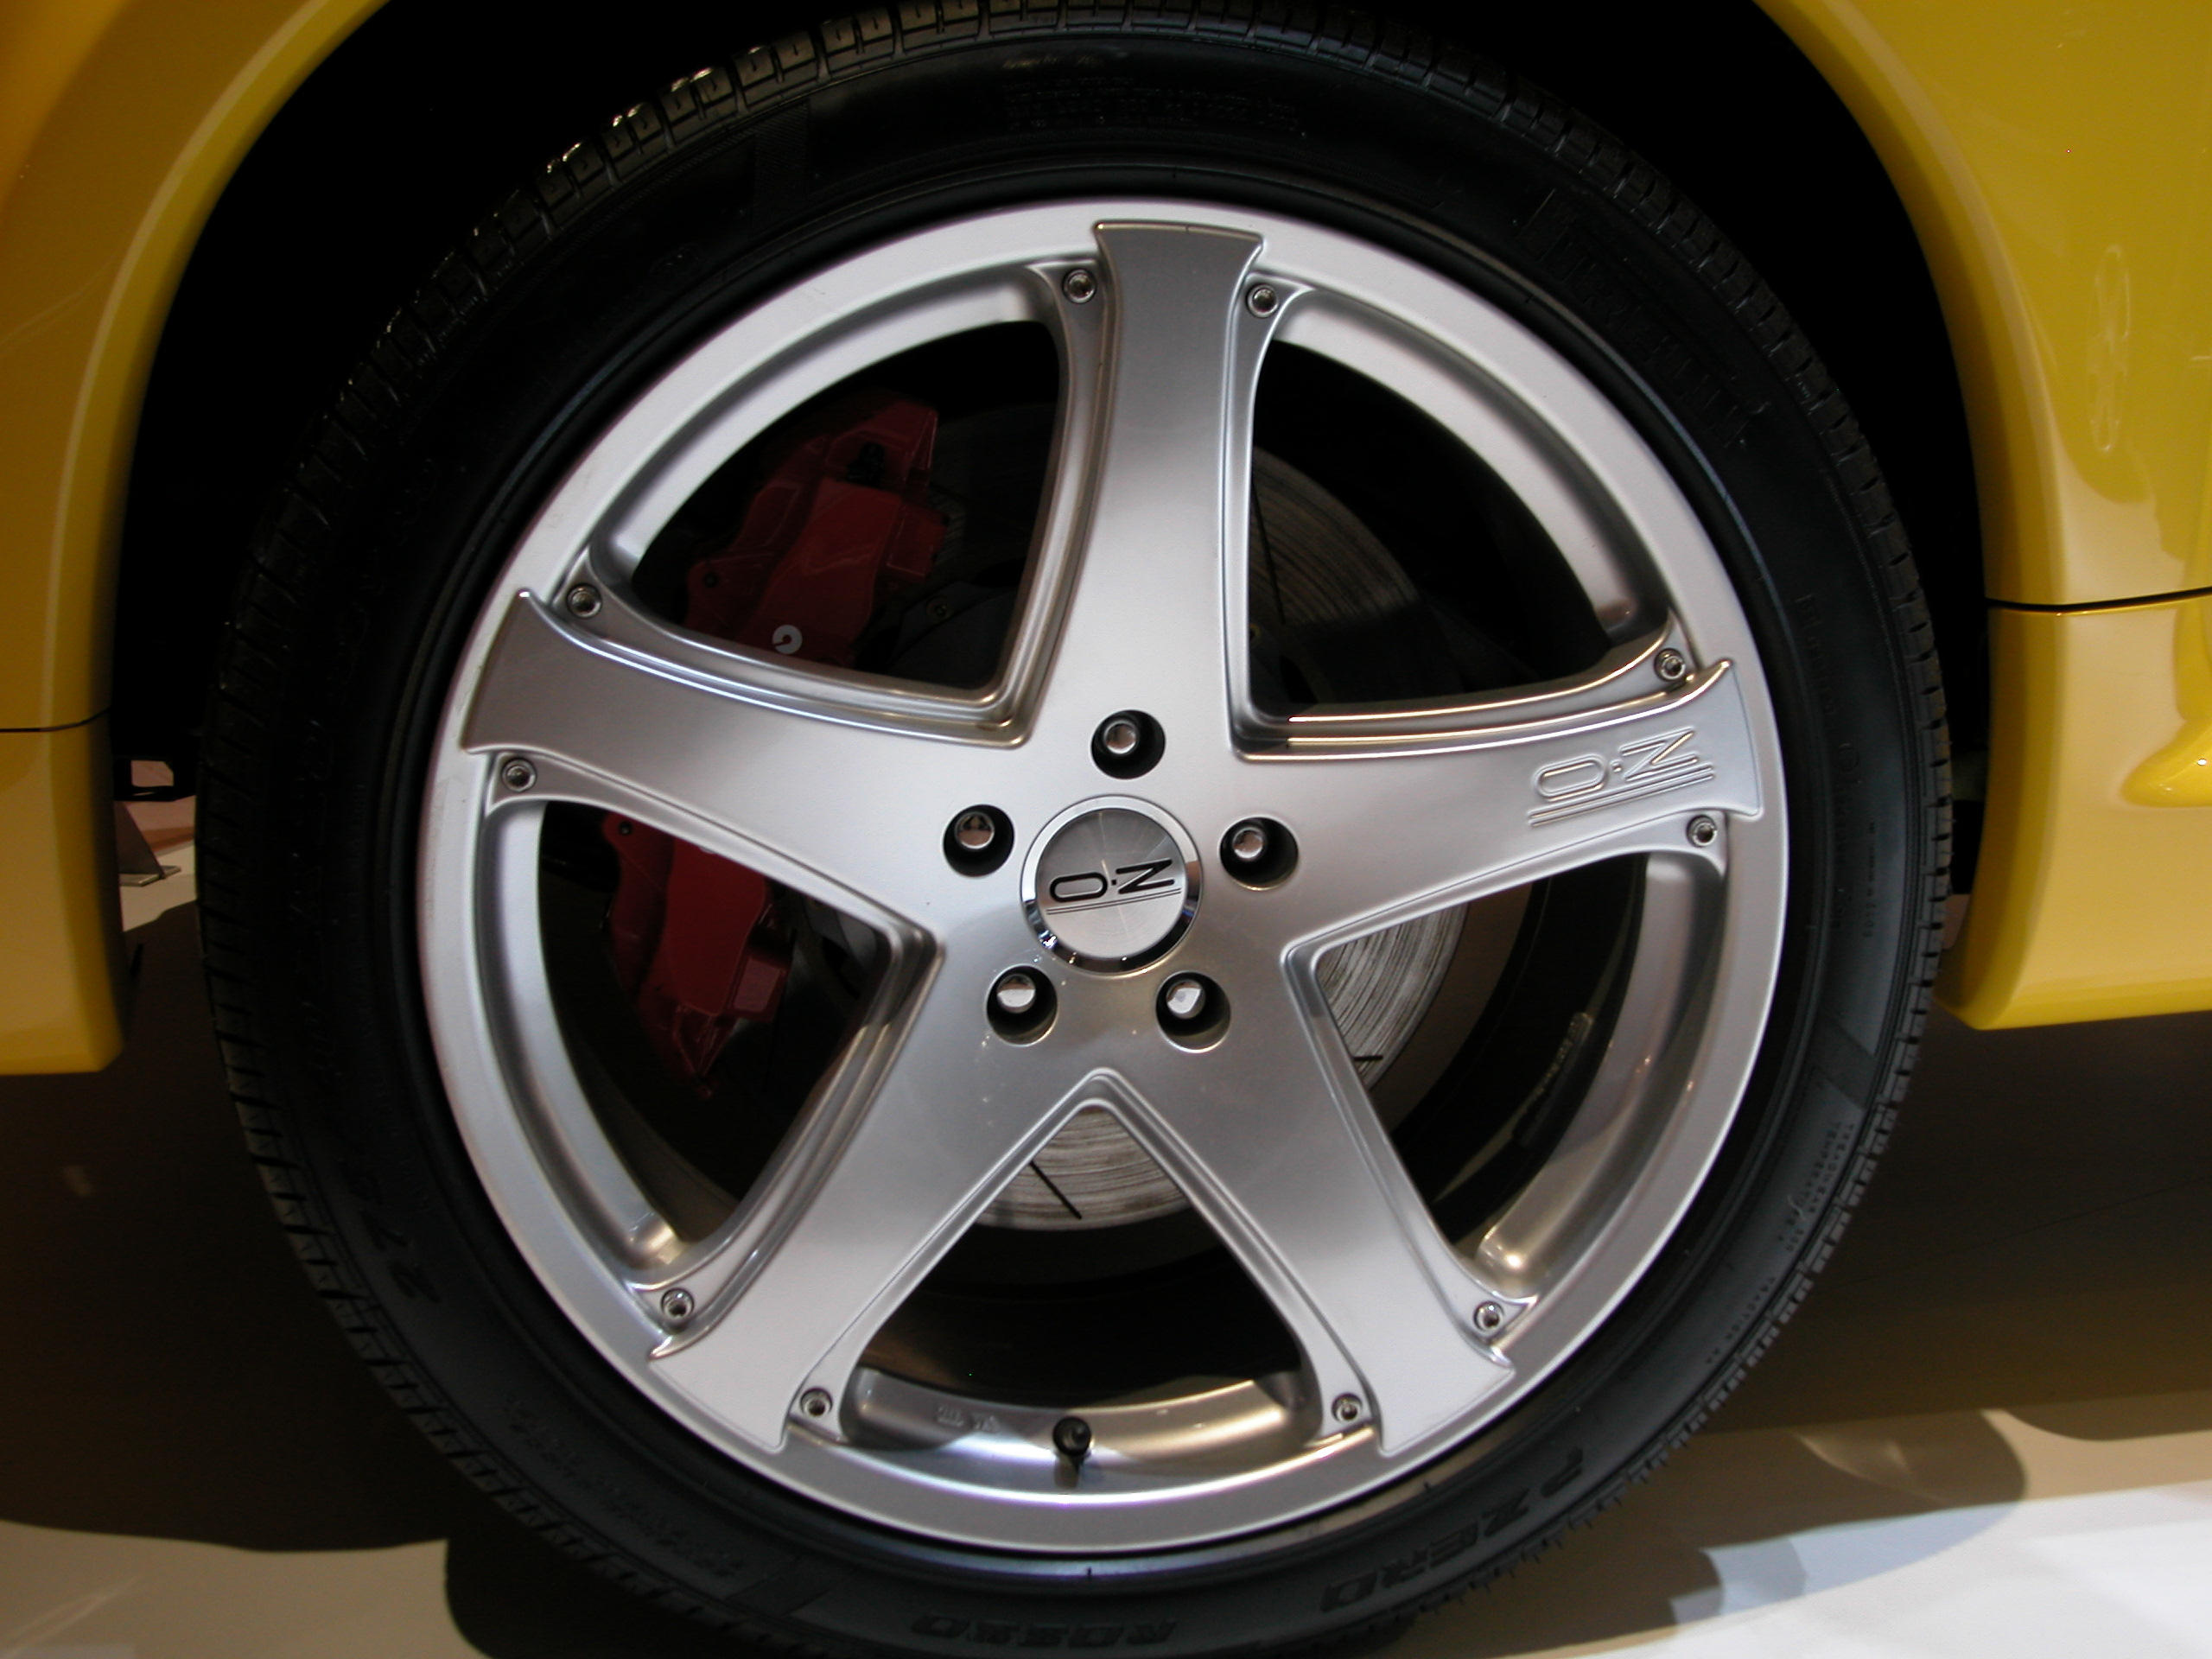 volvo forum wheels rims size winter image focus mb name for st tires views setup